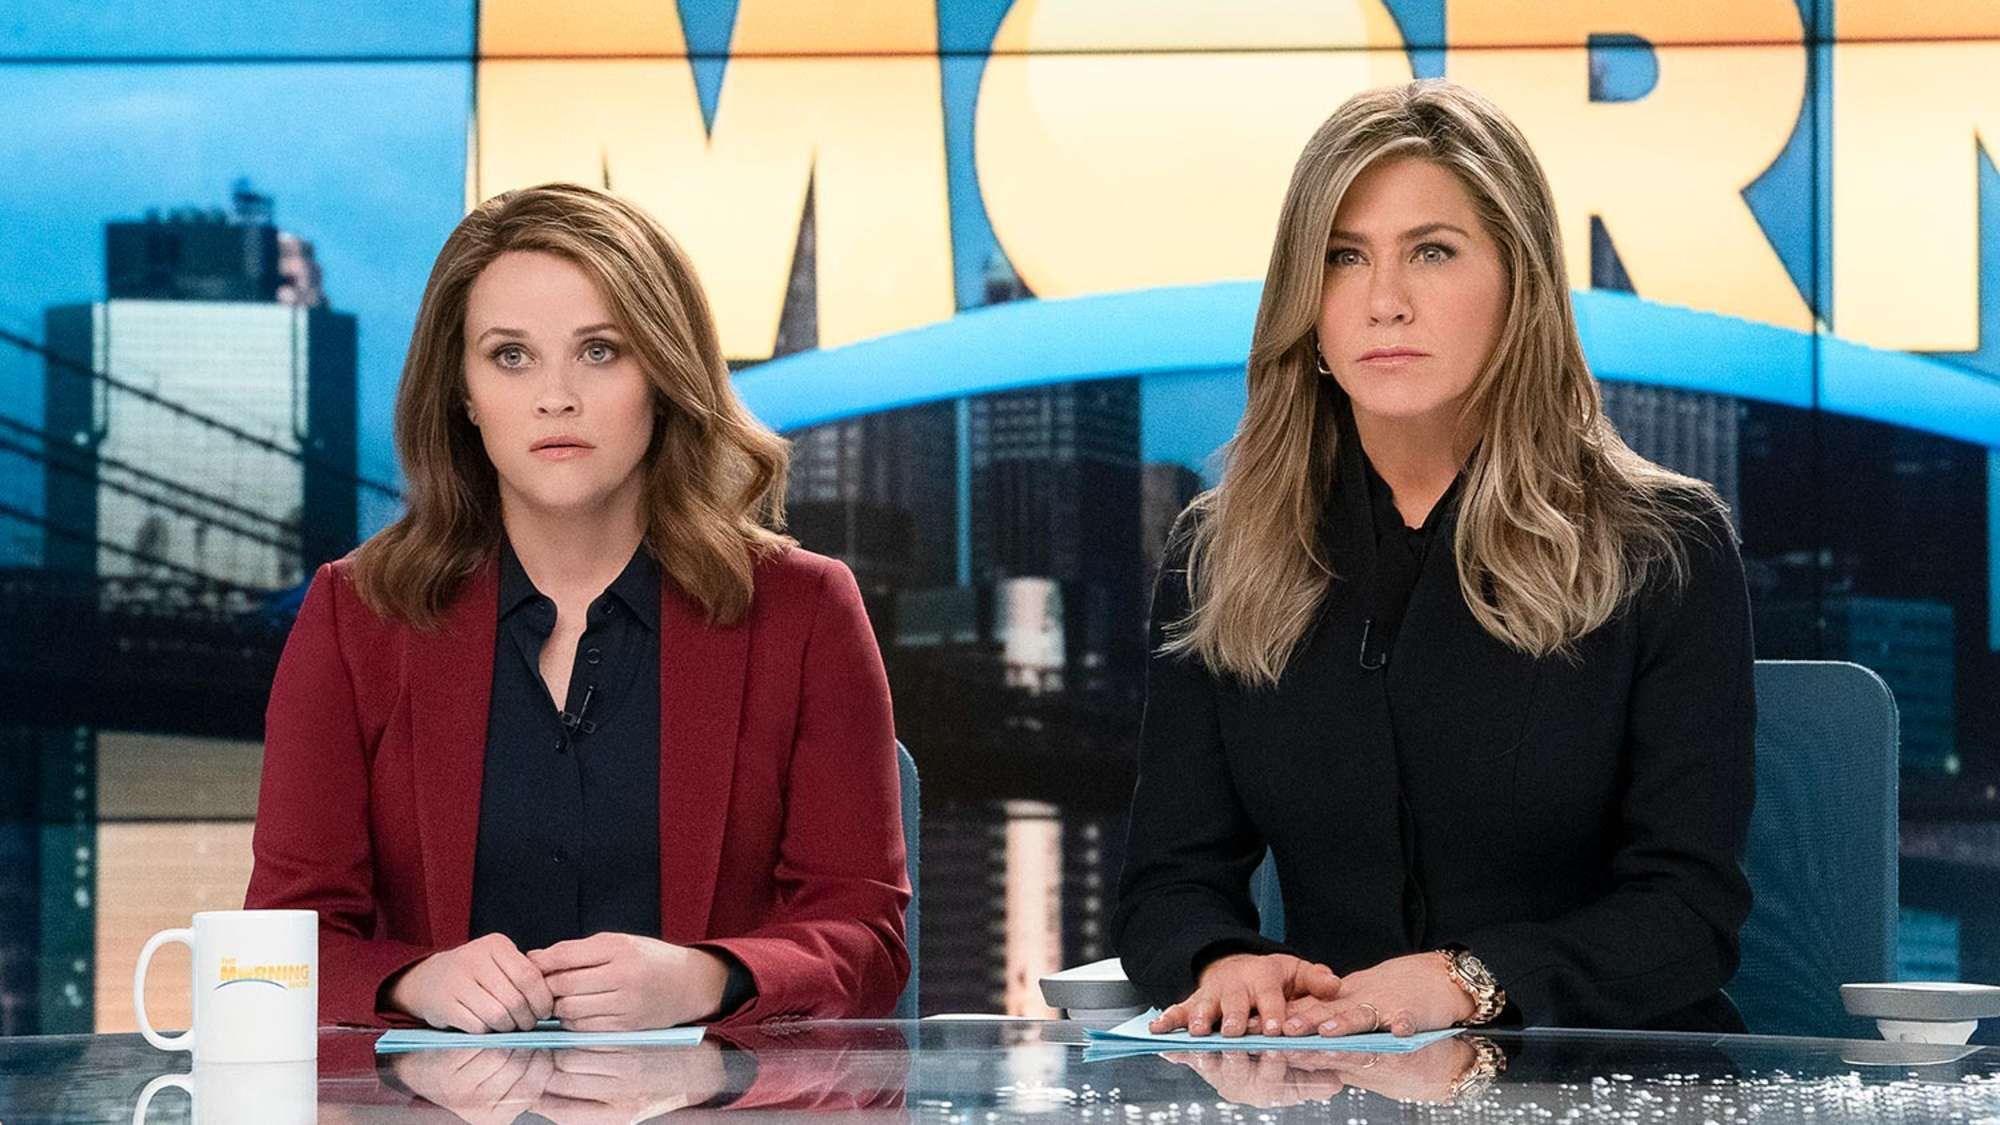 This Is the One Celebrity Jennifer Aniston & Reese Witherspoon Want to Interview on 'The Morning Show'